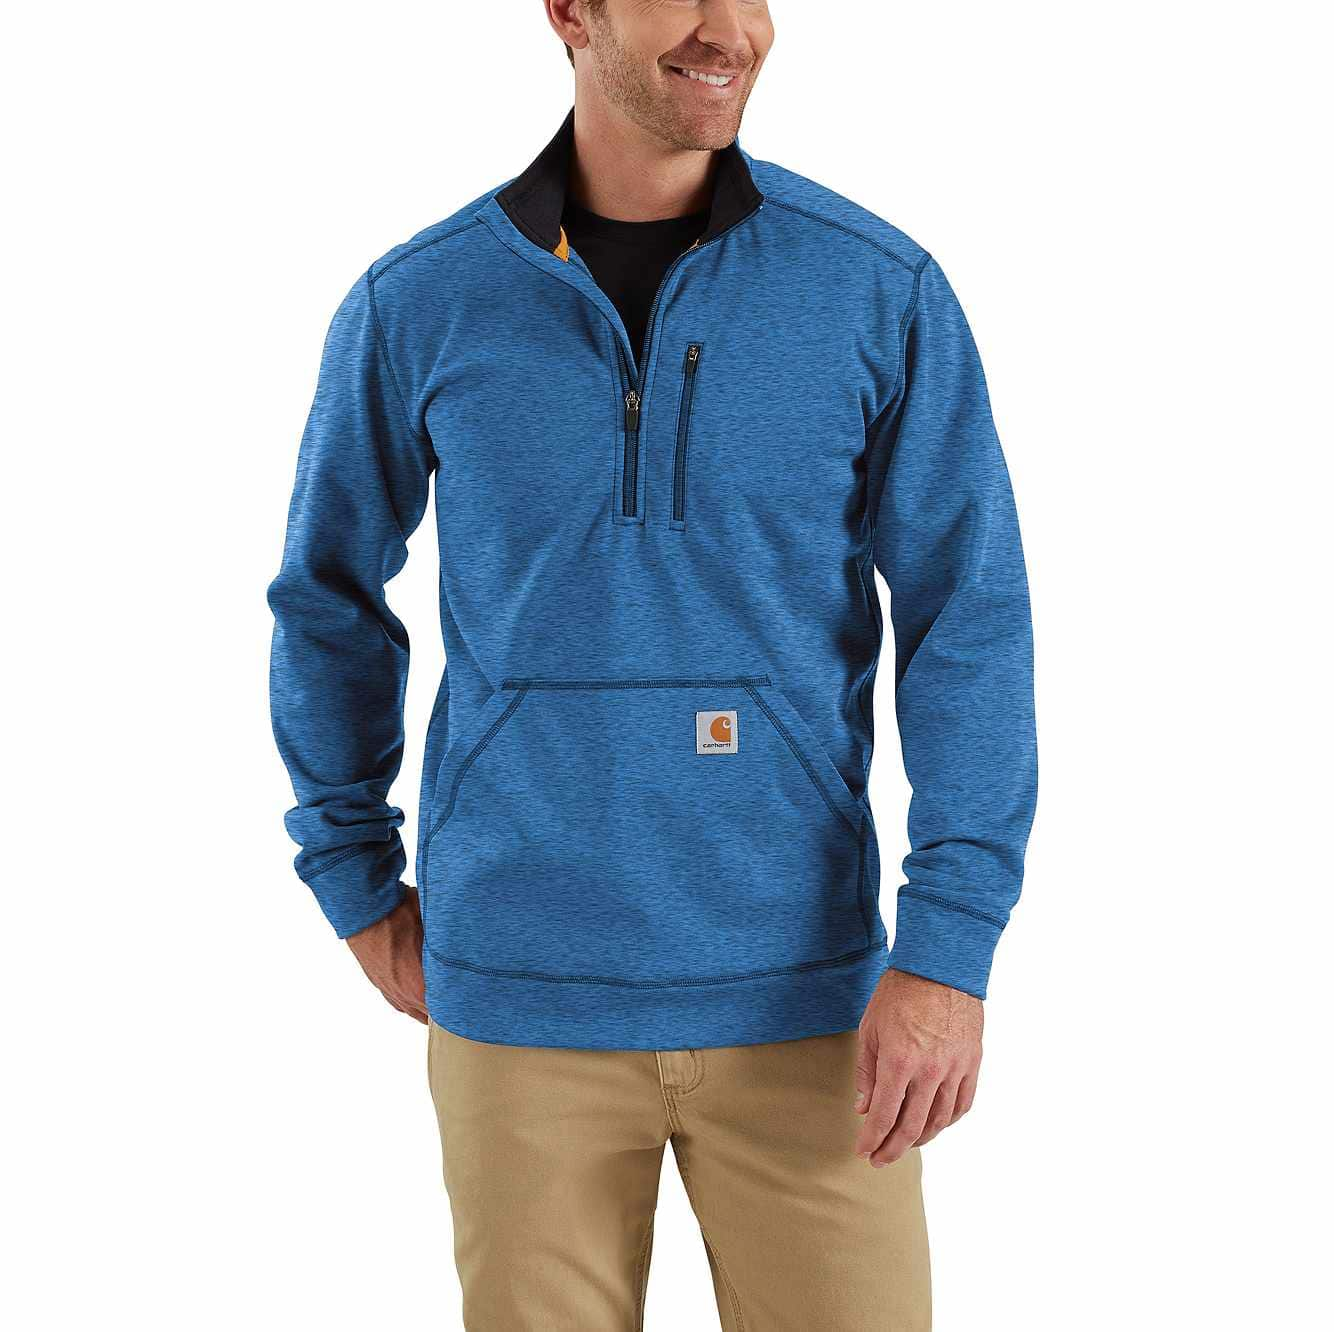 Picture of Force Extremes® Mock Neck Half Zip Sweatshirt in Huron Heather